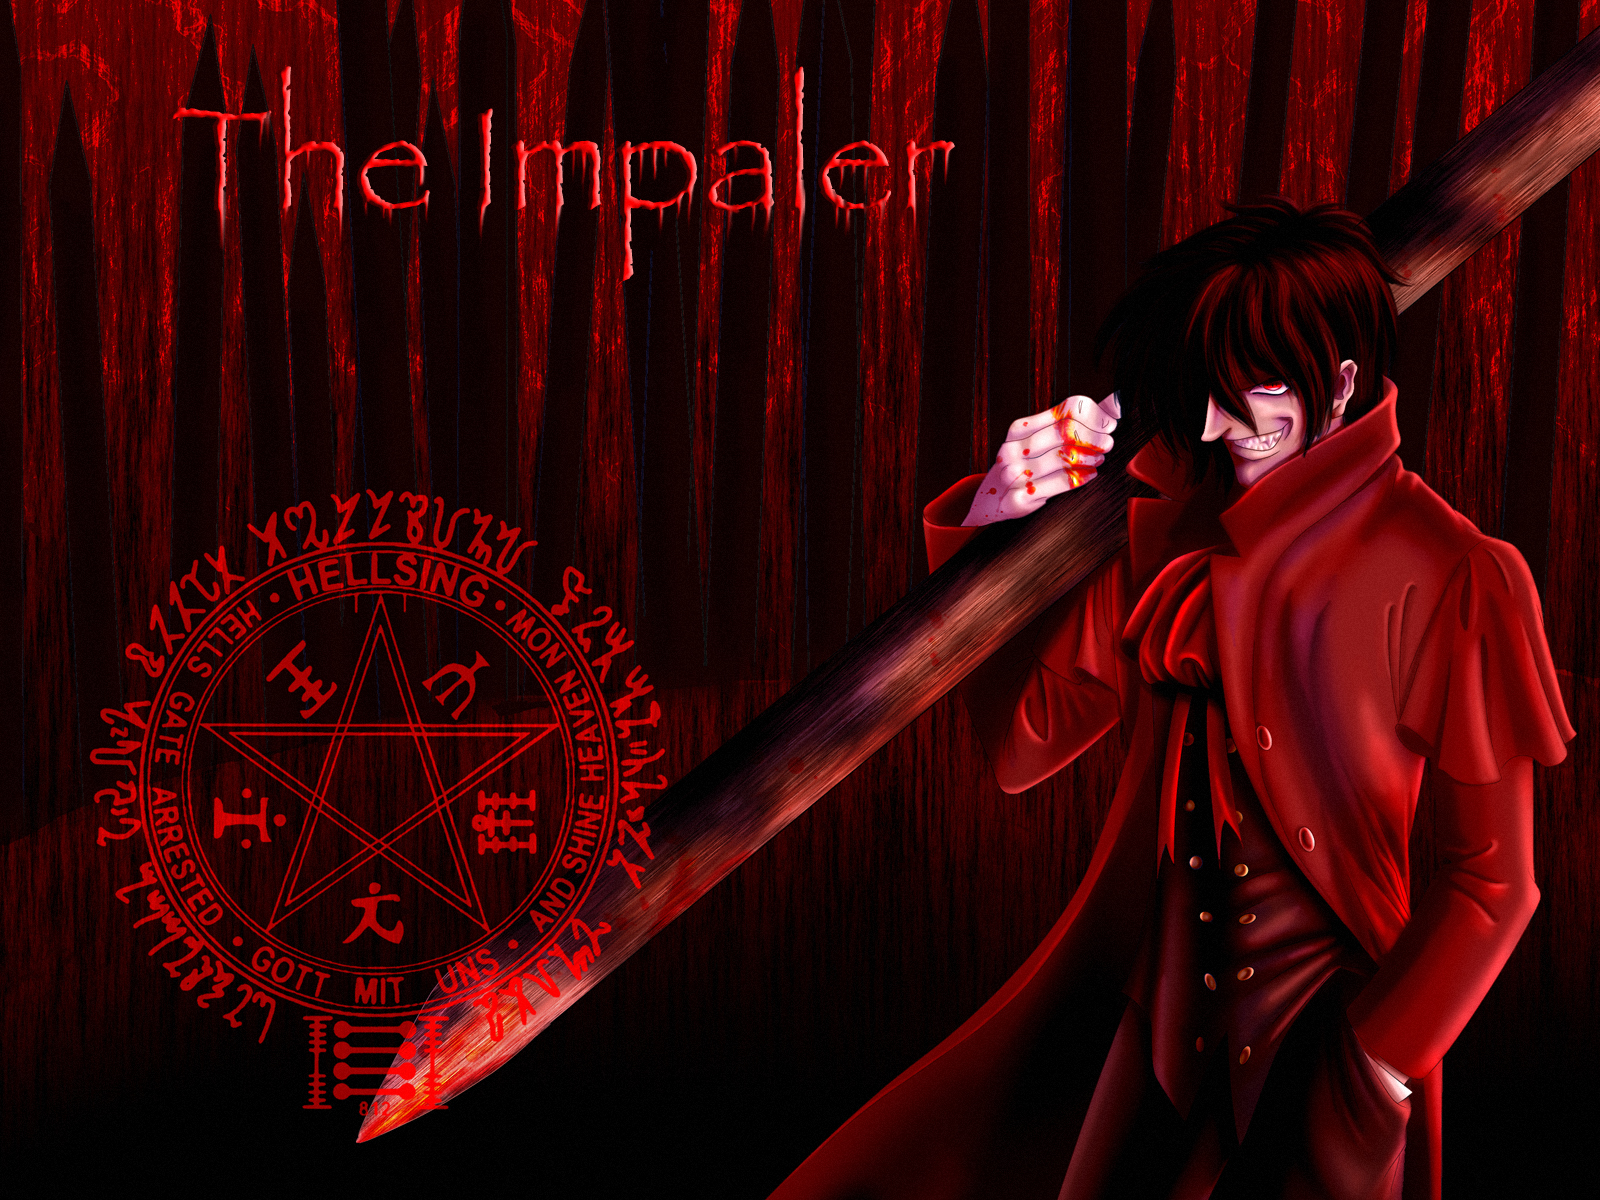 The Impaler - Wallpaper by tchintchie The Impaler - Wallpaper by tchintchie